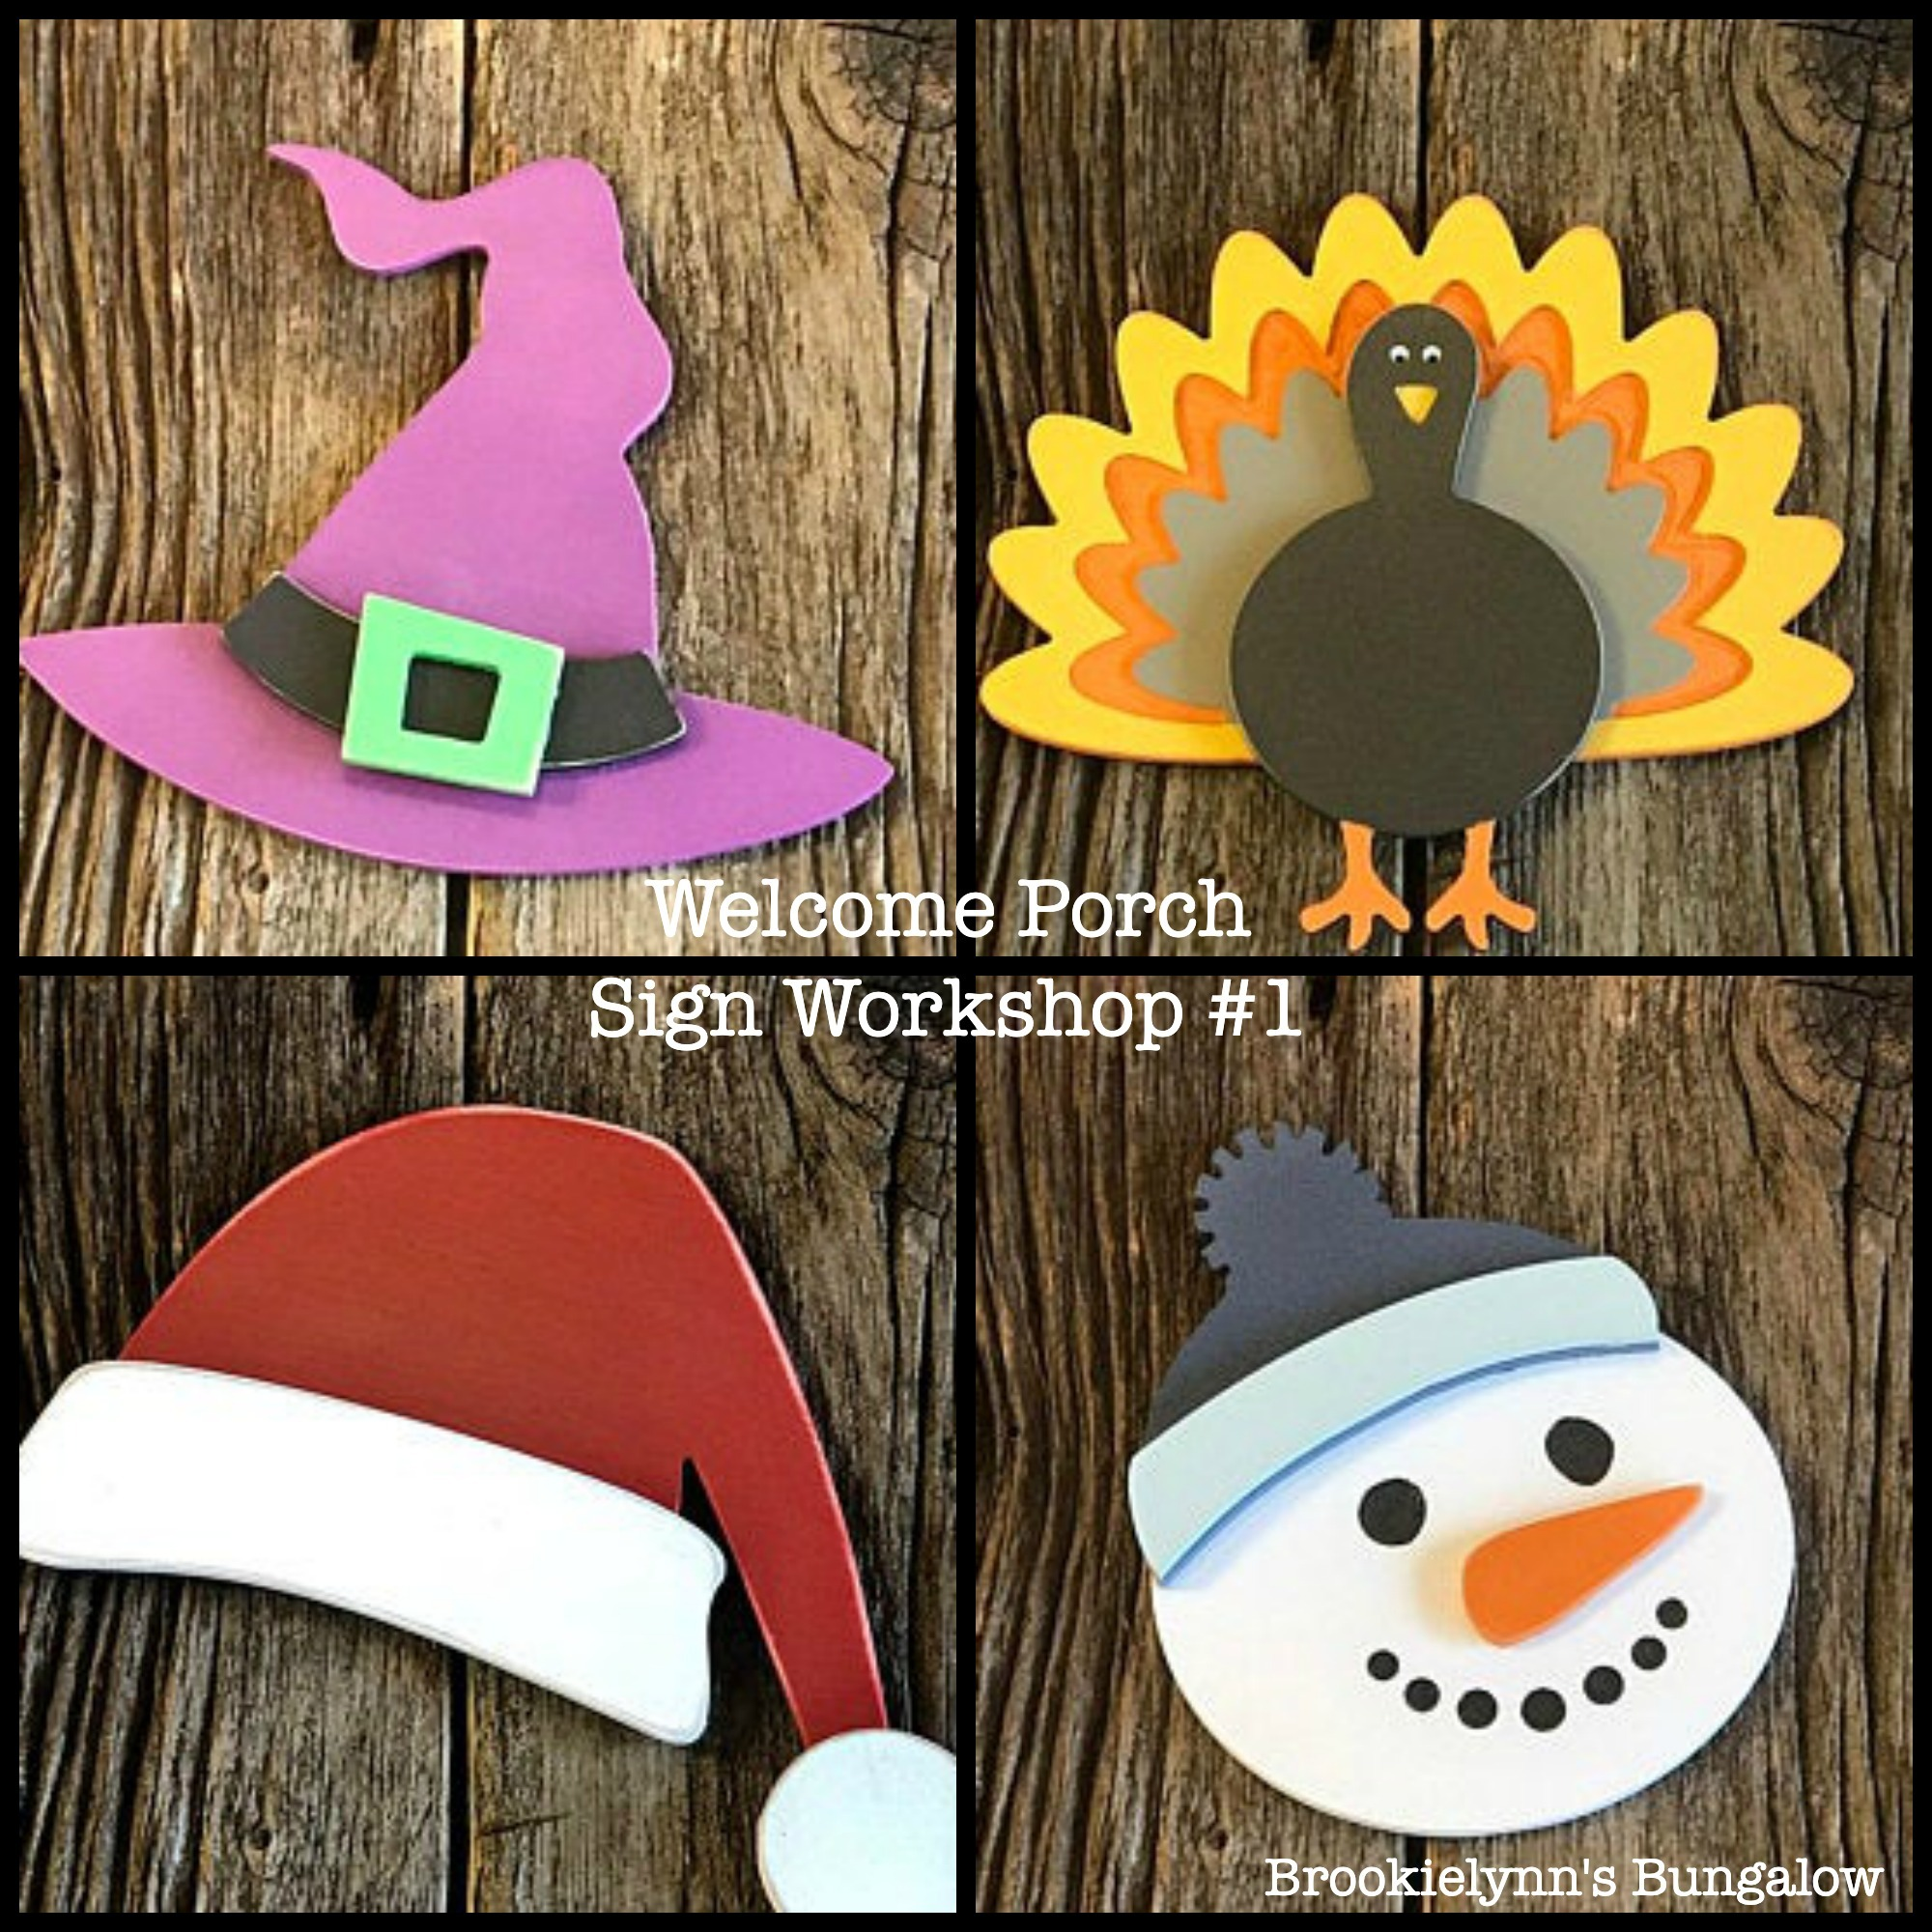 Vertical Welcome Porch Sign with Interchangeable Seasonal Shapes Workshop #1